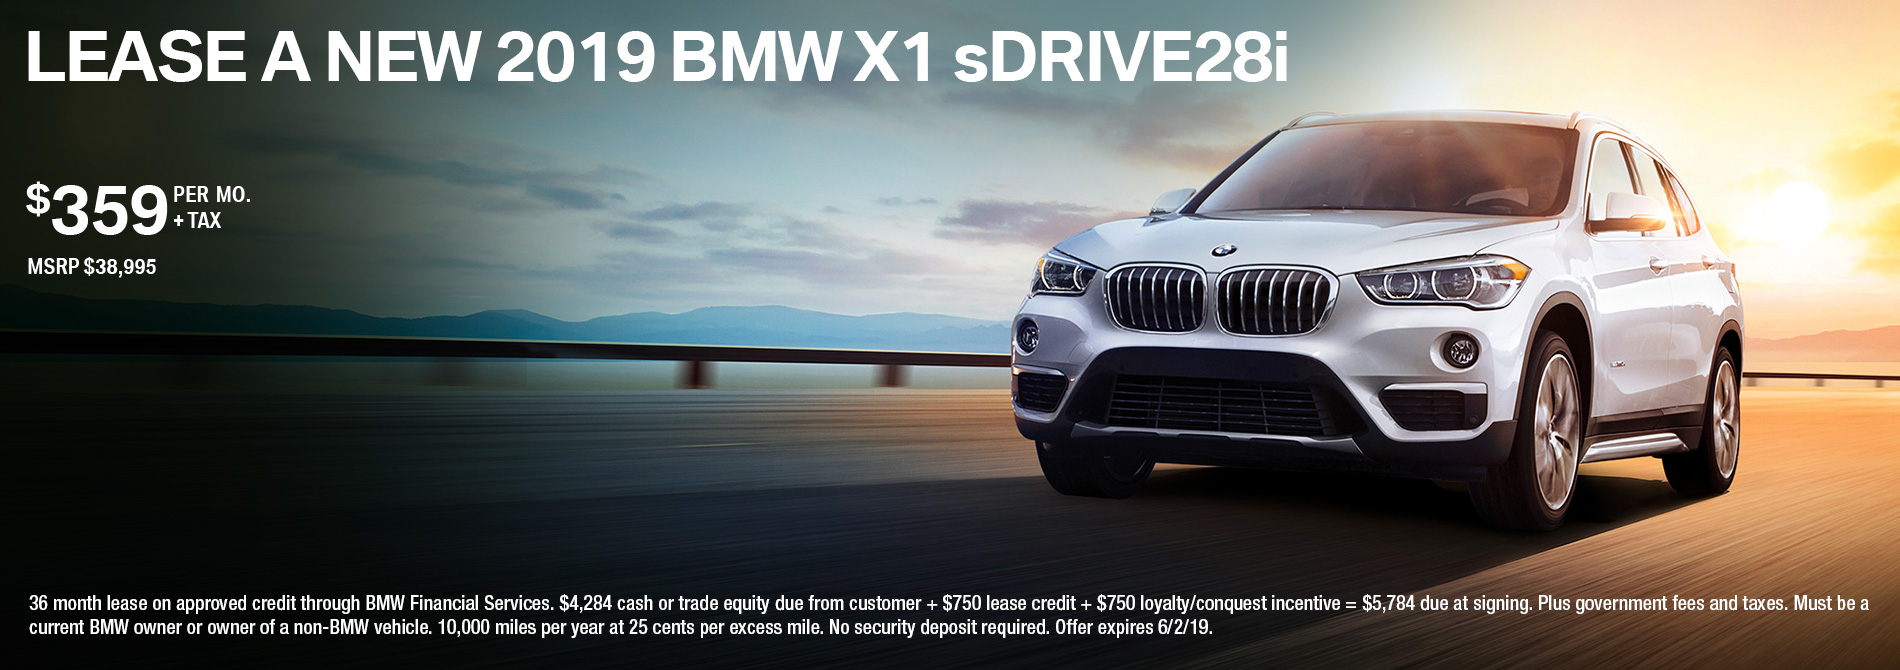 2019 Bmw X1 Sdrive28i Lease For 359 Mo 36 4 284 Plus Tax And License Due At Signing Msrp 38 995 Offer Ends 6 2 19